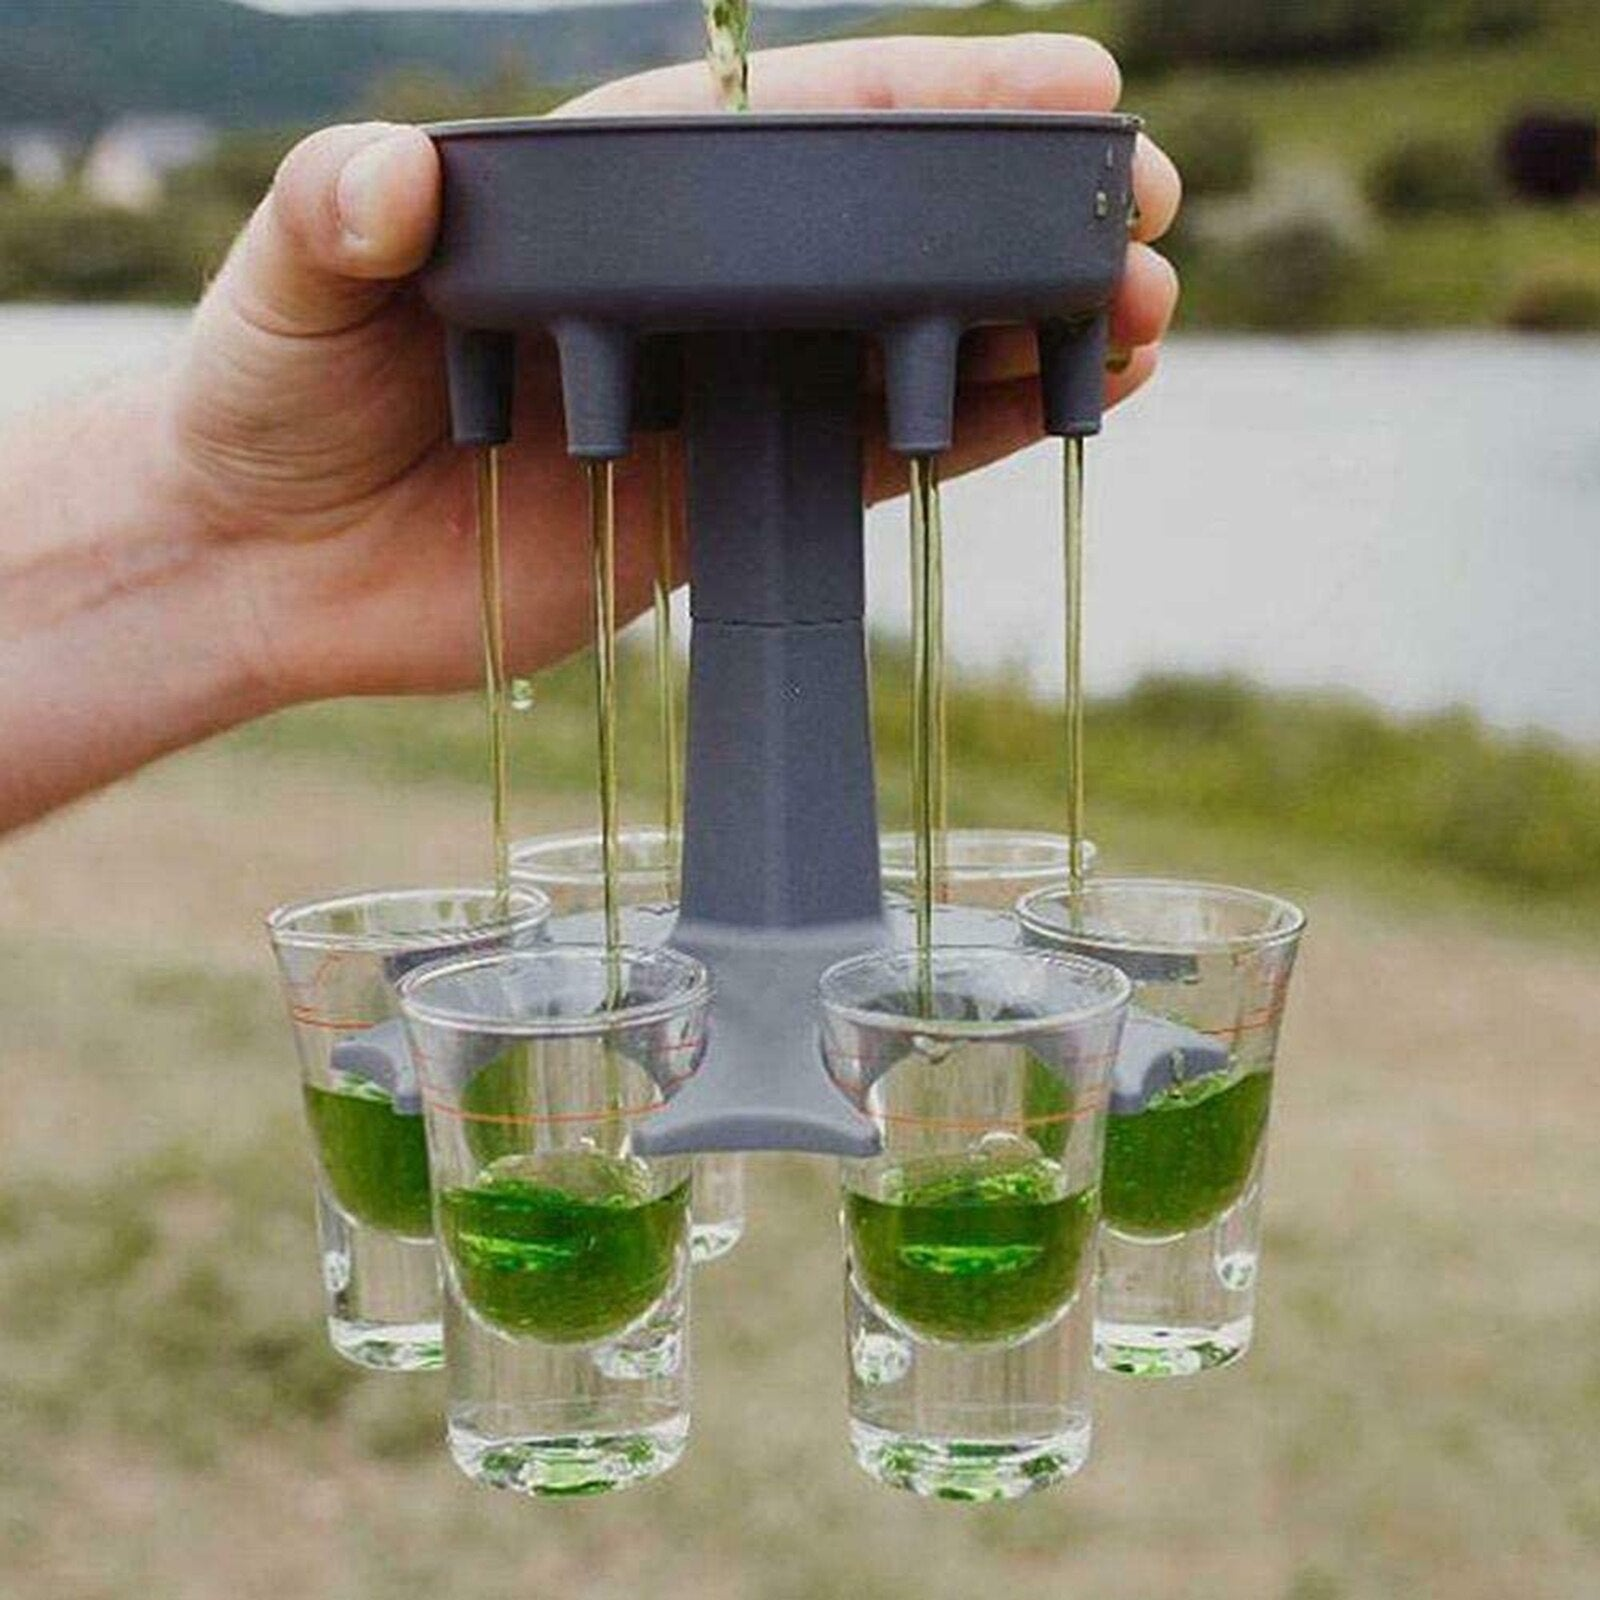 🔥HOT SELLER🔥SHOTBUDDY 6 SHOT DISPENSER